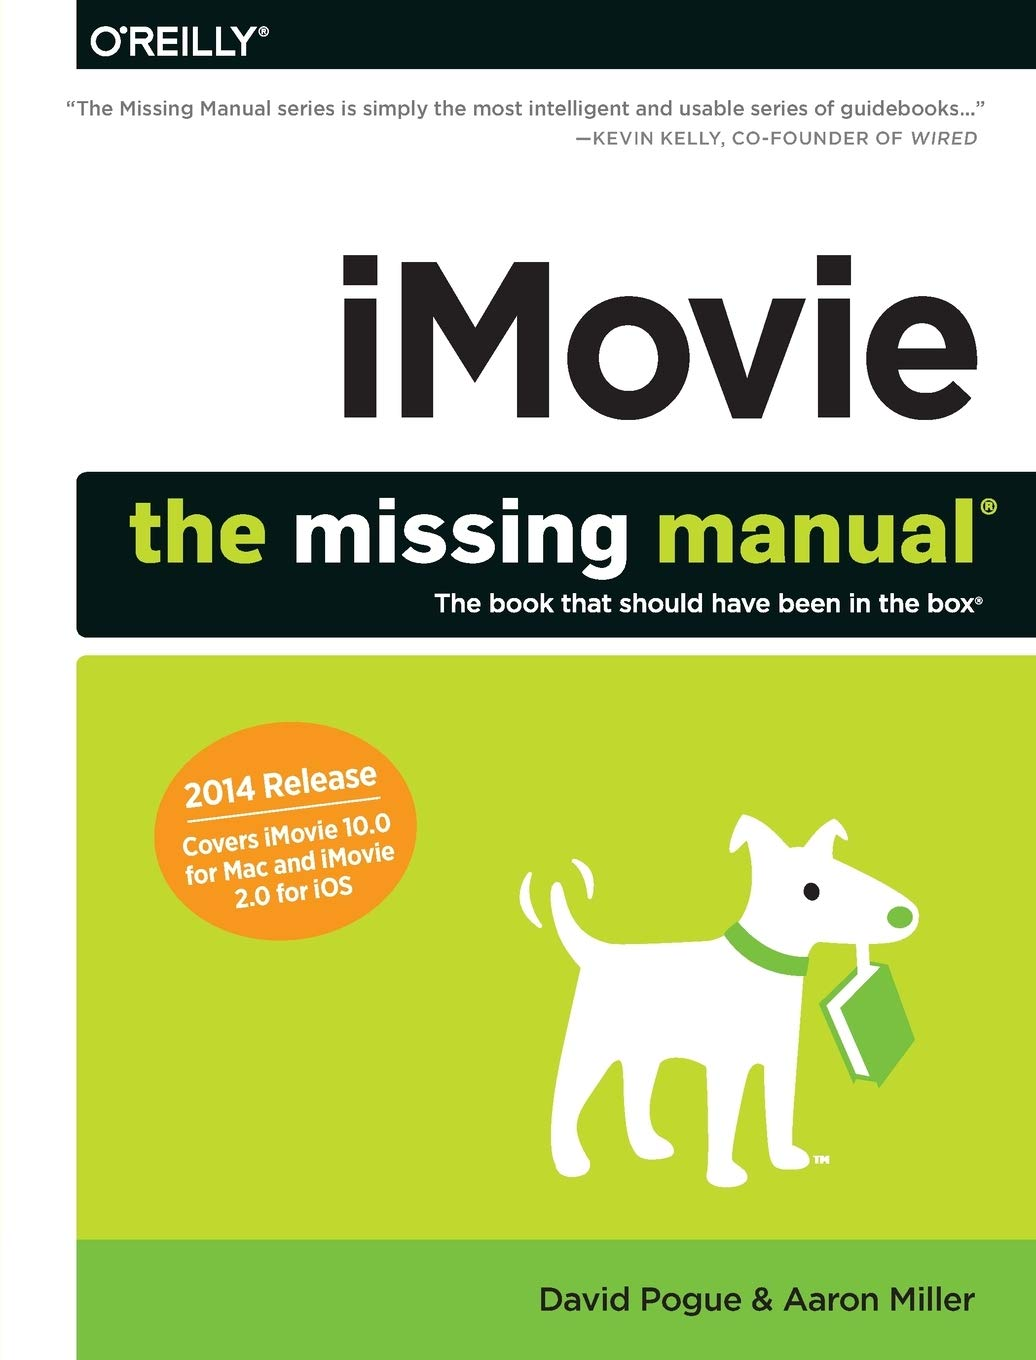 IMovie  The Missing Manual  2014 Release Covers IMovie 10.0 For Mac And 2.0 For IOS